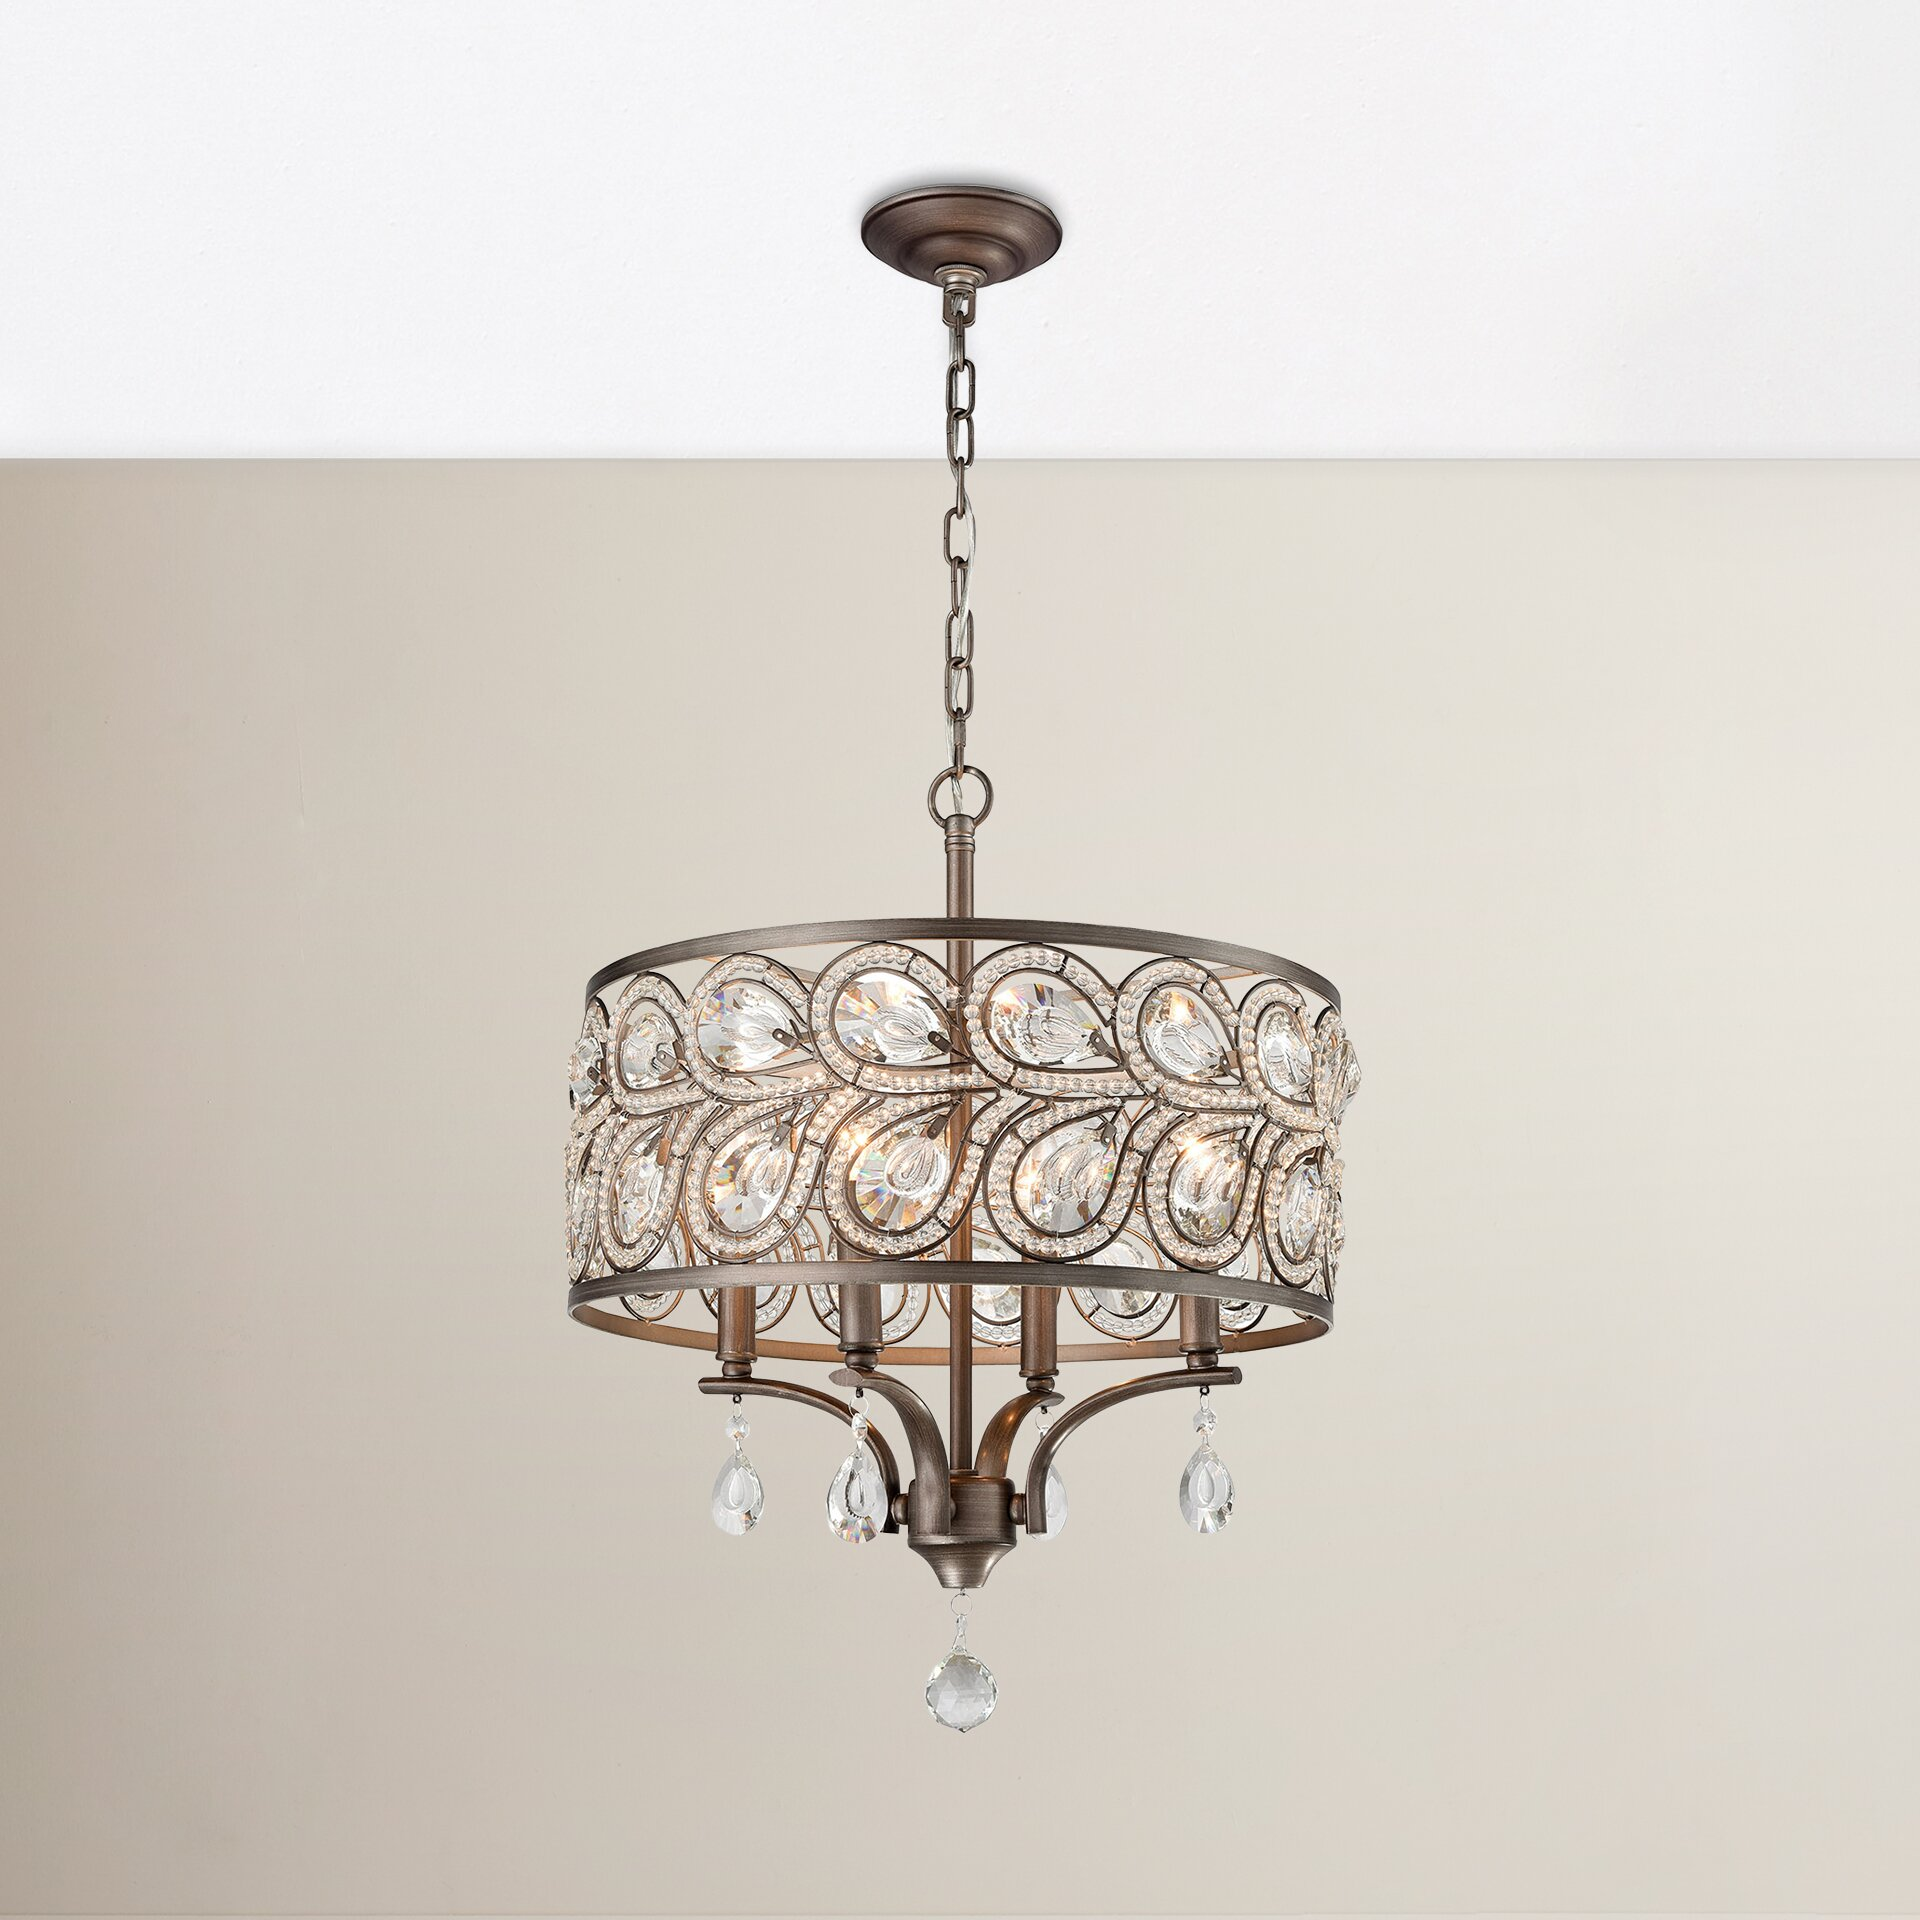 House of hampton norwich 4 light drum chandelier wayfair - Ceiling lights and chandeliers ...